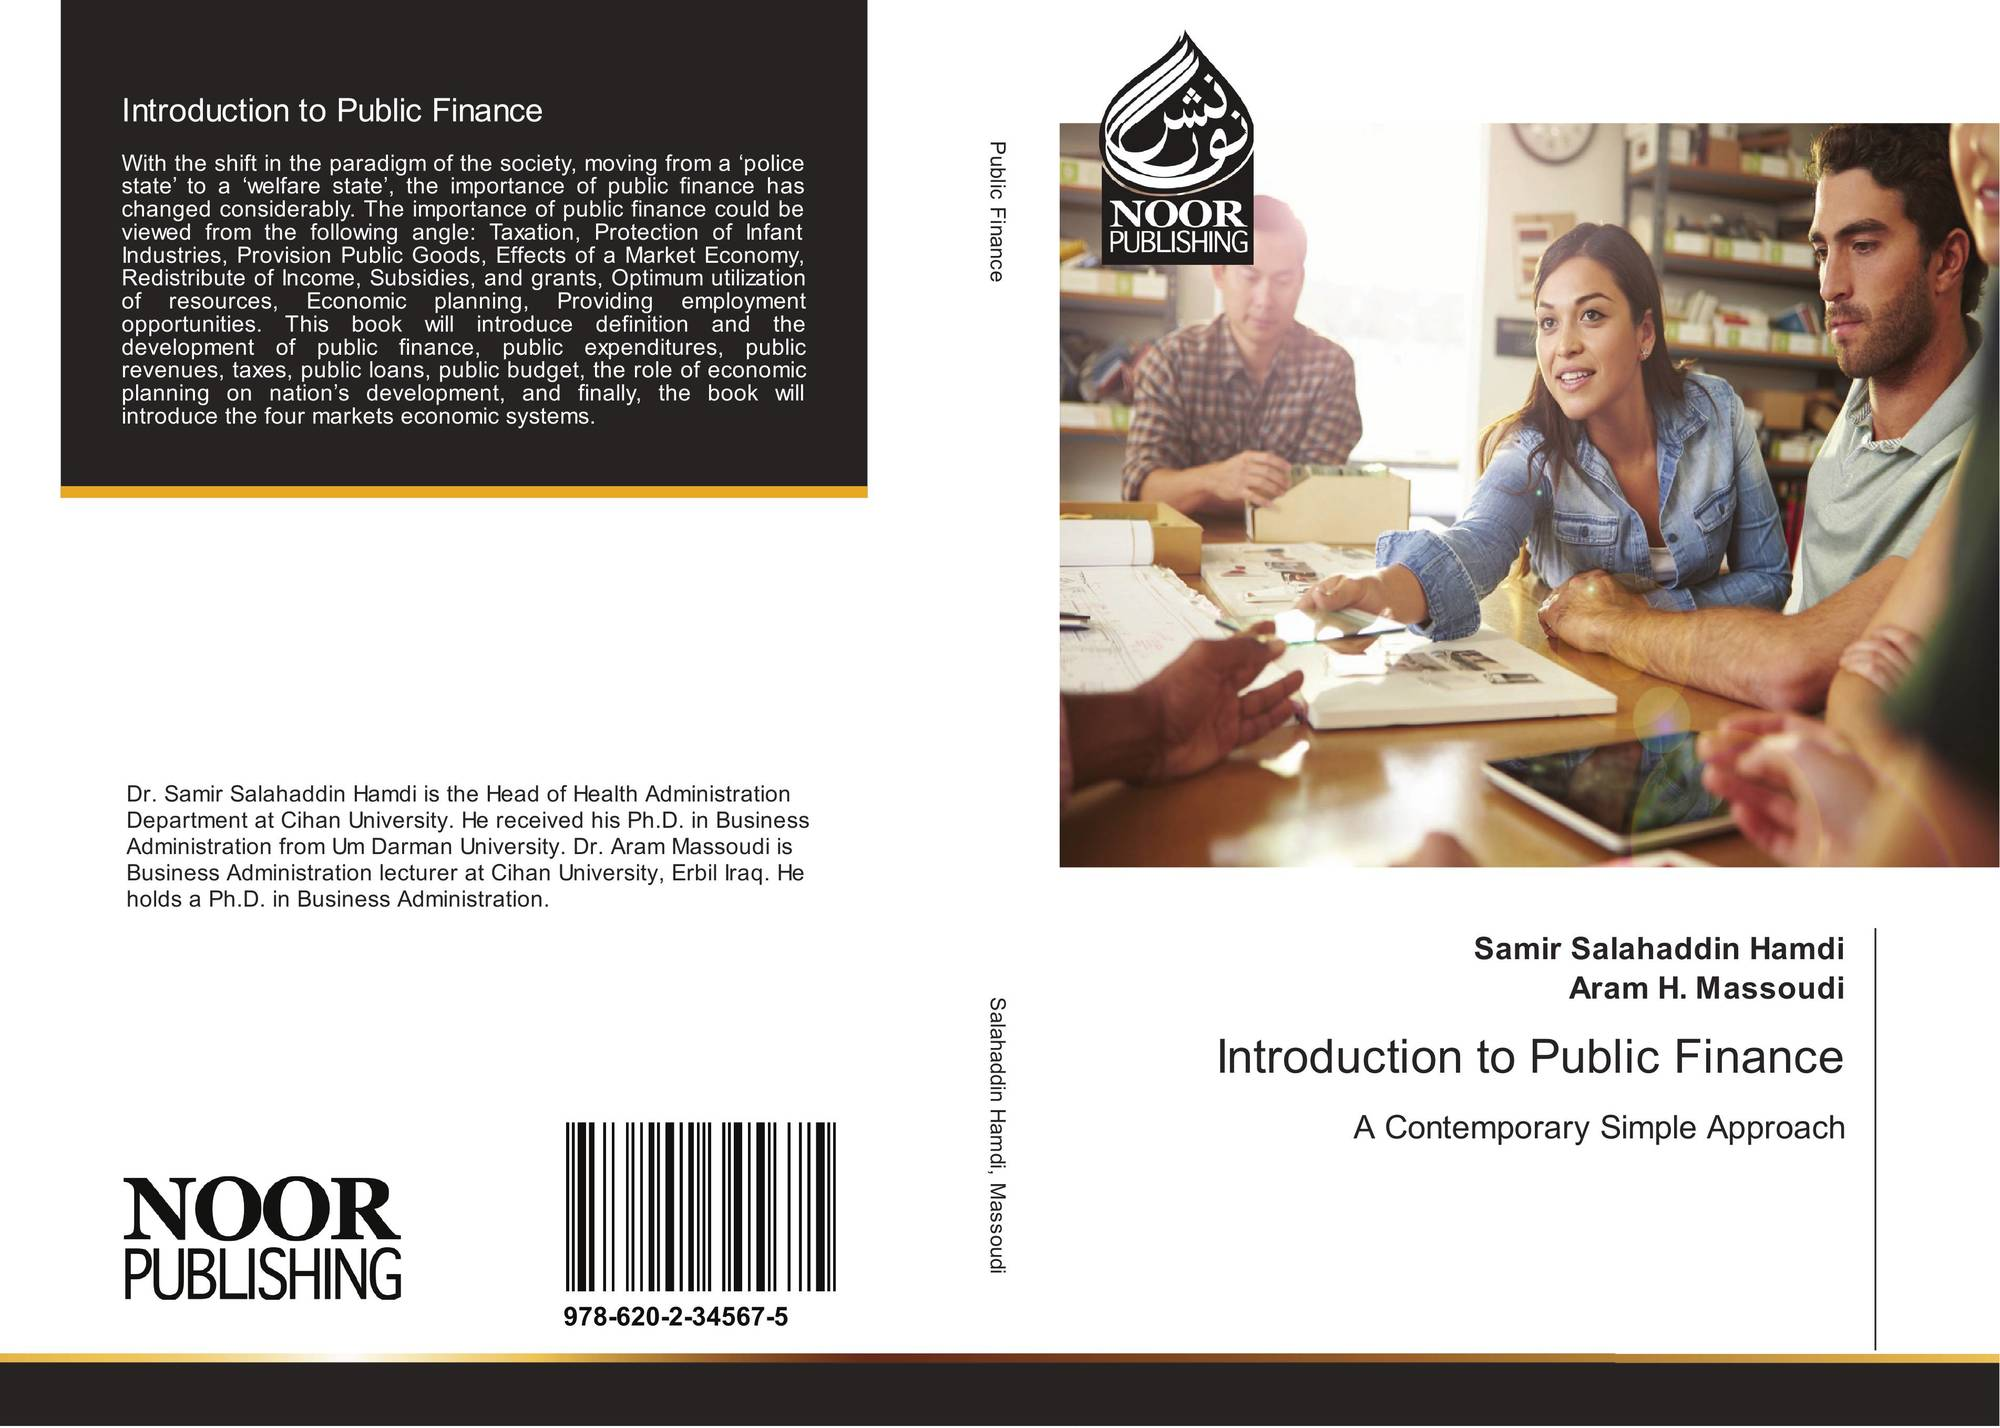 an introduction to public finance